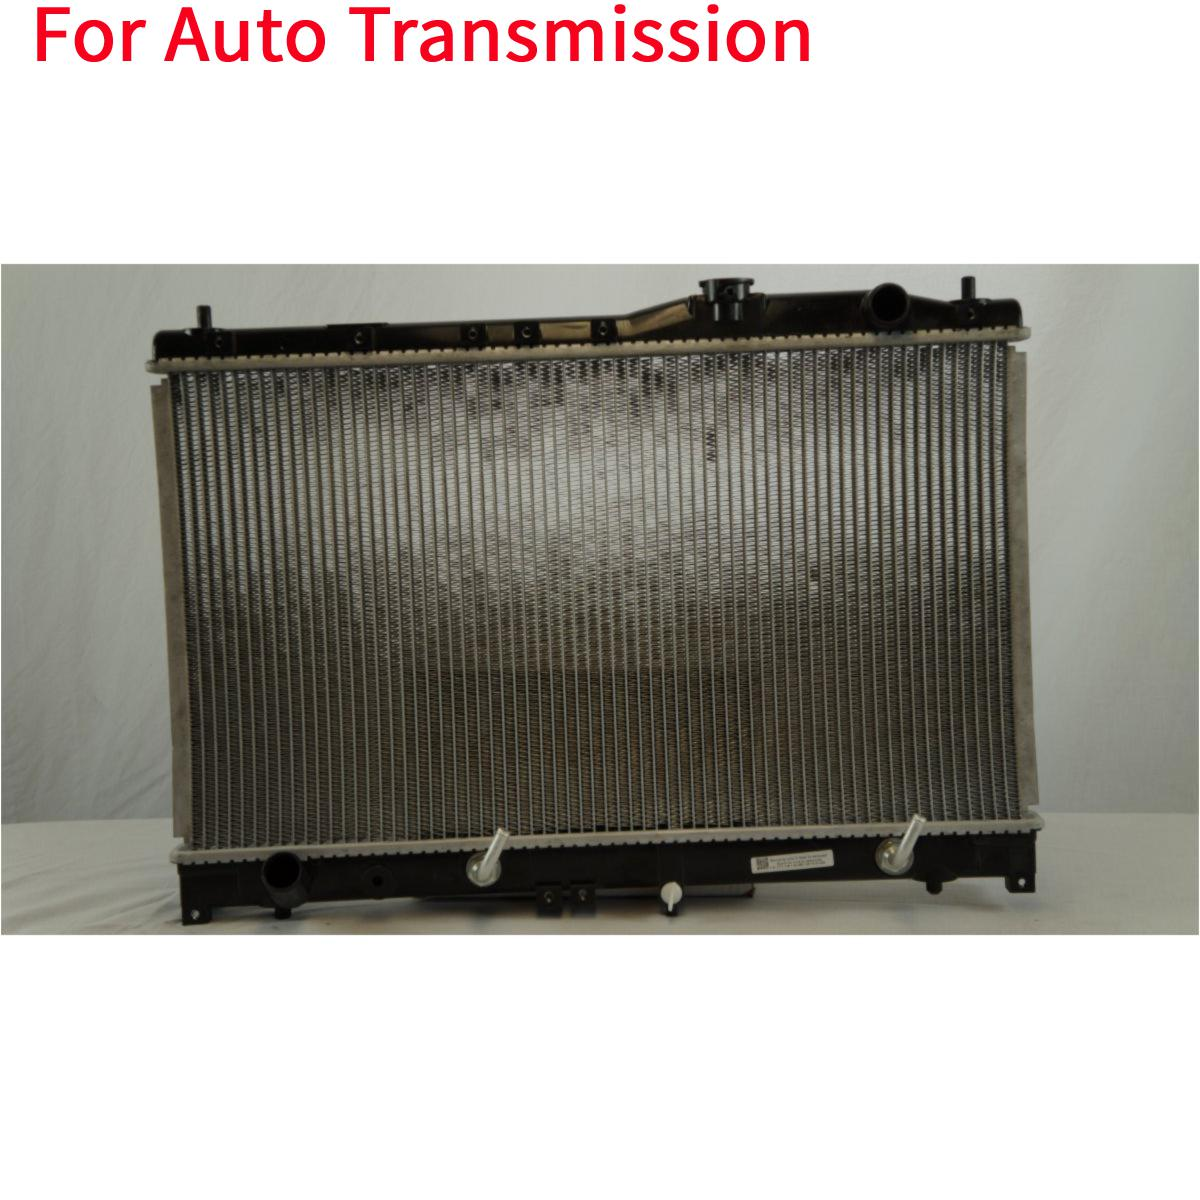 AT Aluminum/Plastic Radiator 1 Row For 1992-1994 Acura